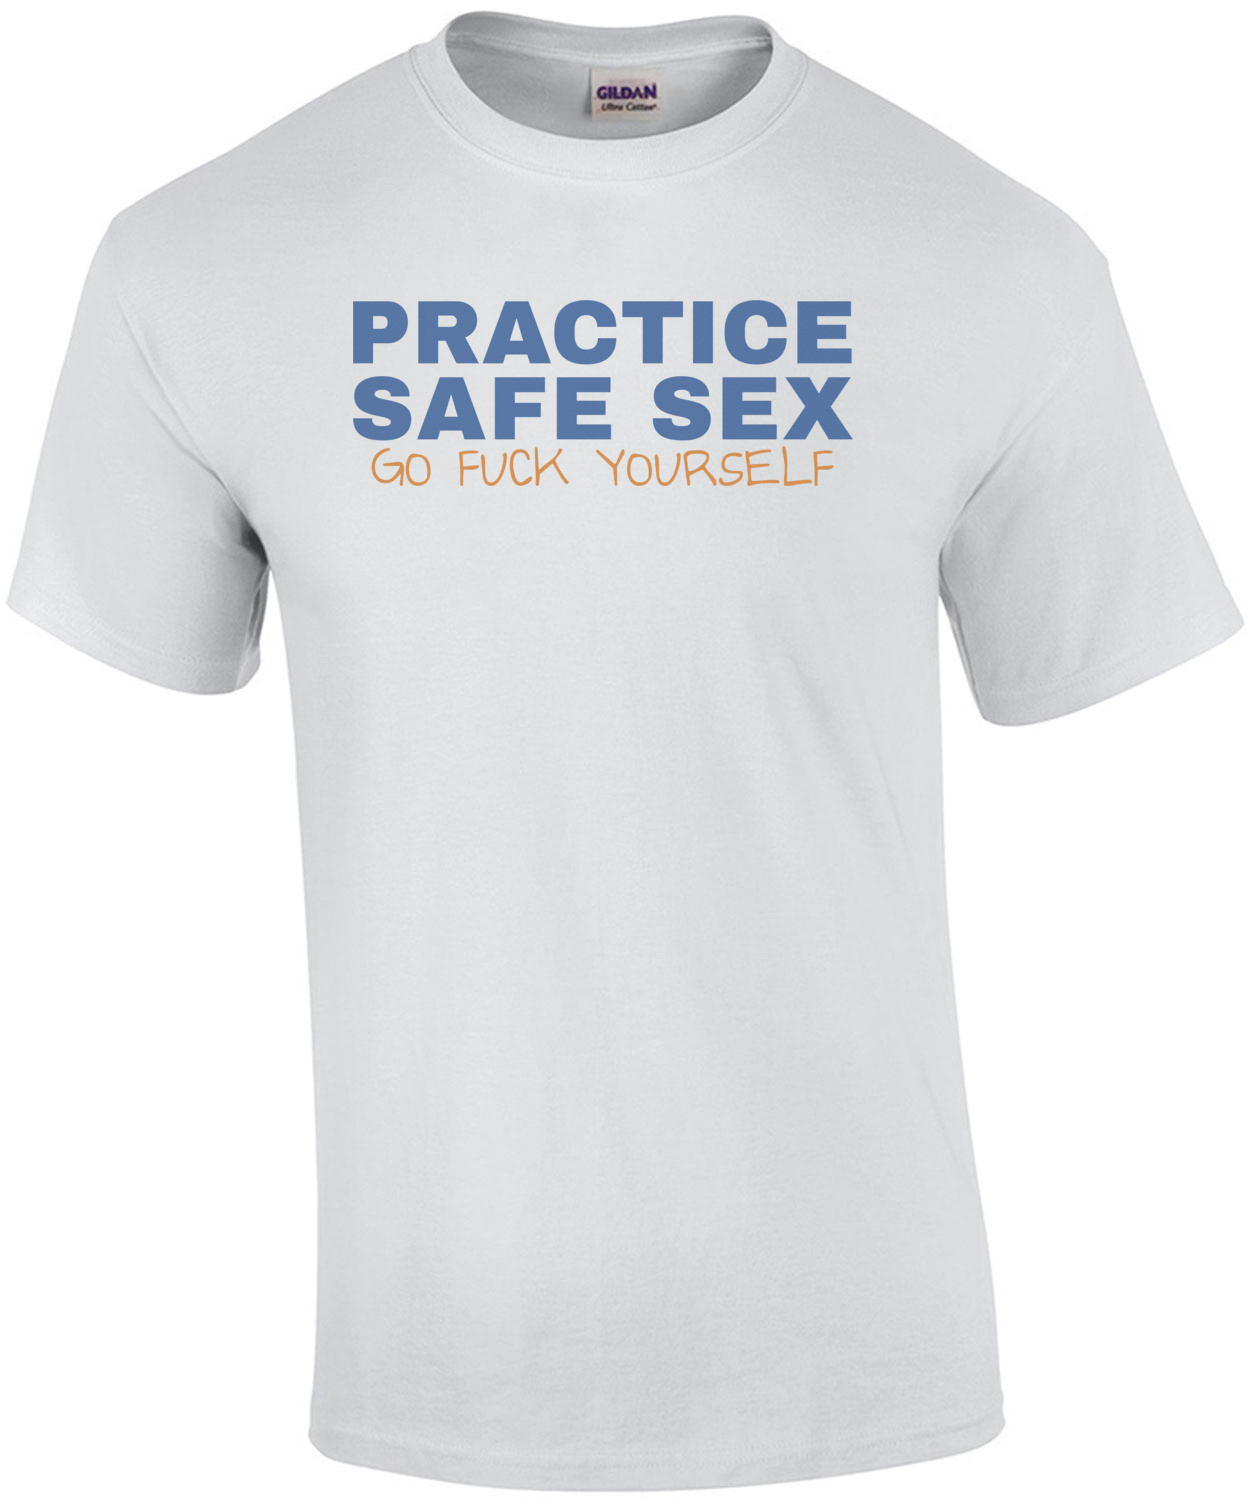 Practice Safe Sex - Go Fuck Yourself T-Shirt